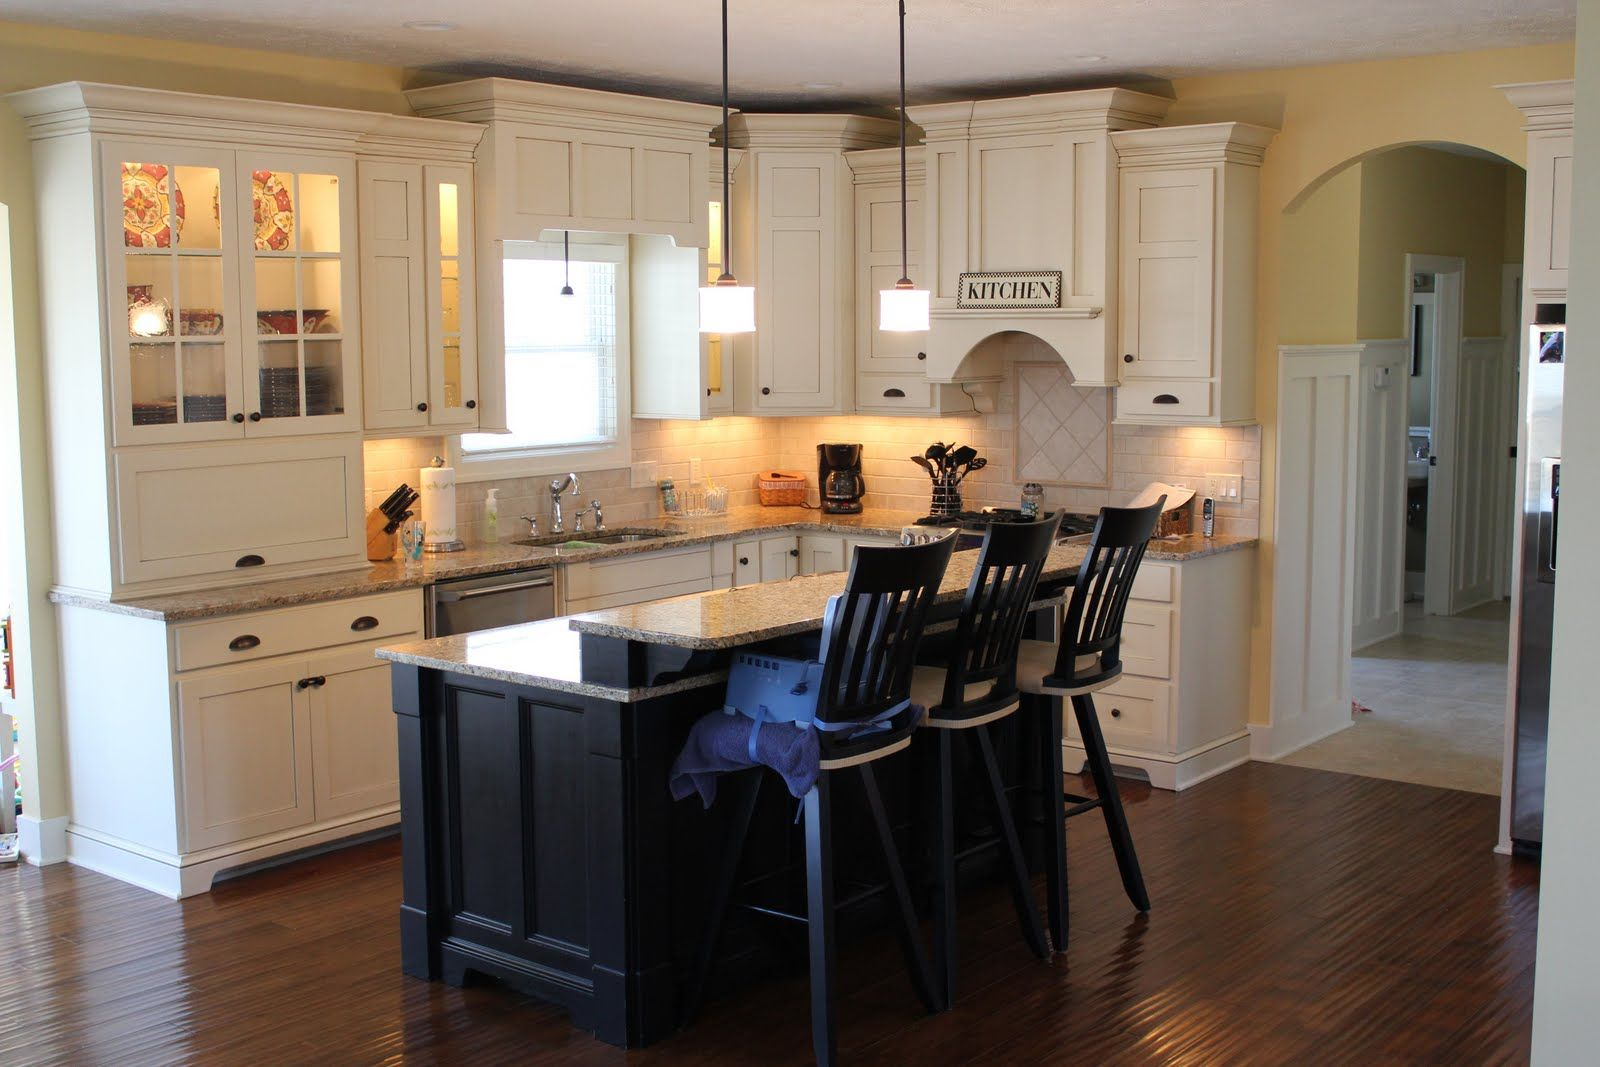 Benjamin moore vellum yellow kitchen find the right kitchen cabinet paint colors